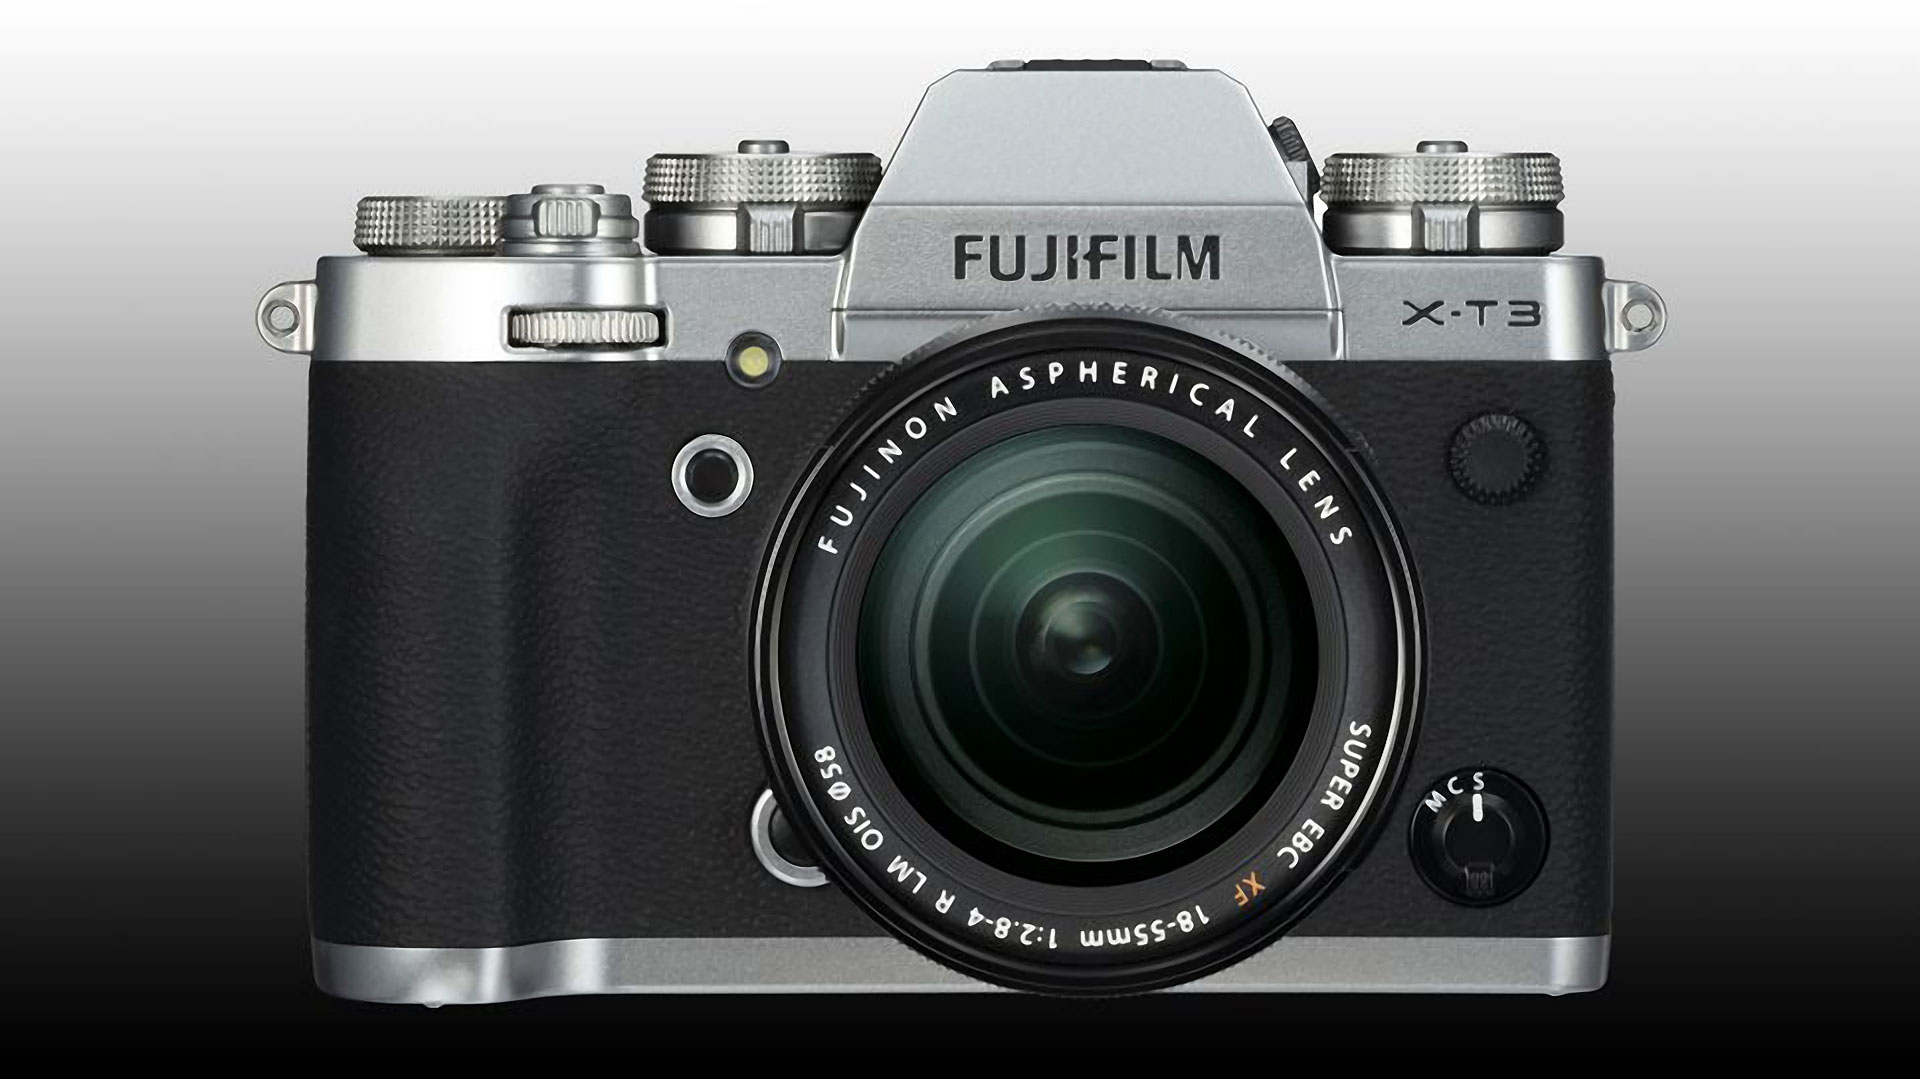 Fujifilm X-T3 brings big updates to autofocus and video features